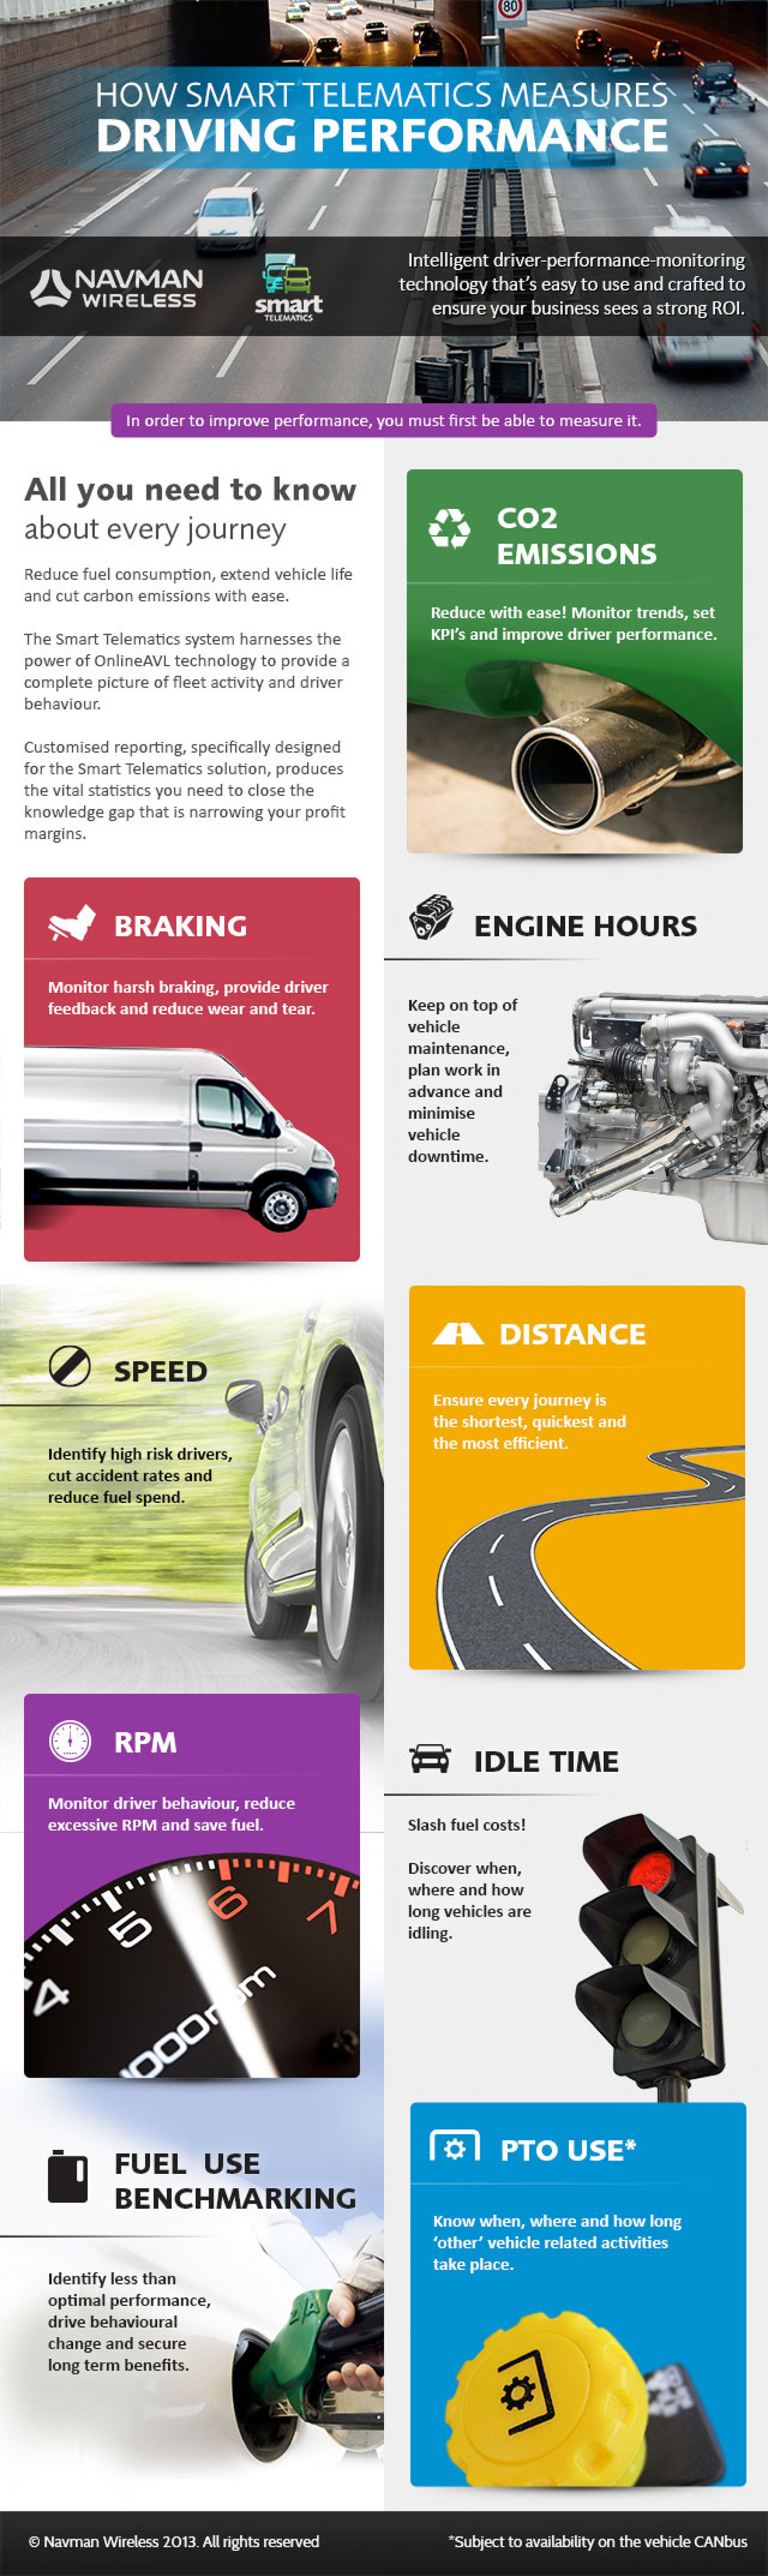 Measure Driver Performance with Smart Telematics Infographic